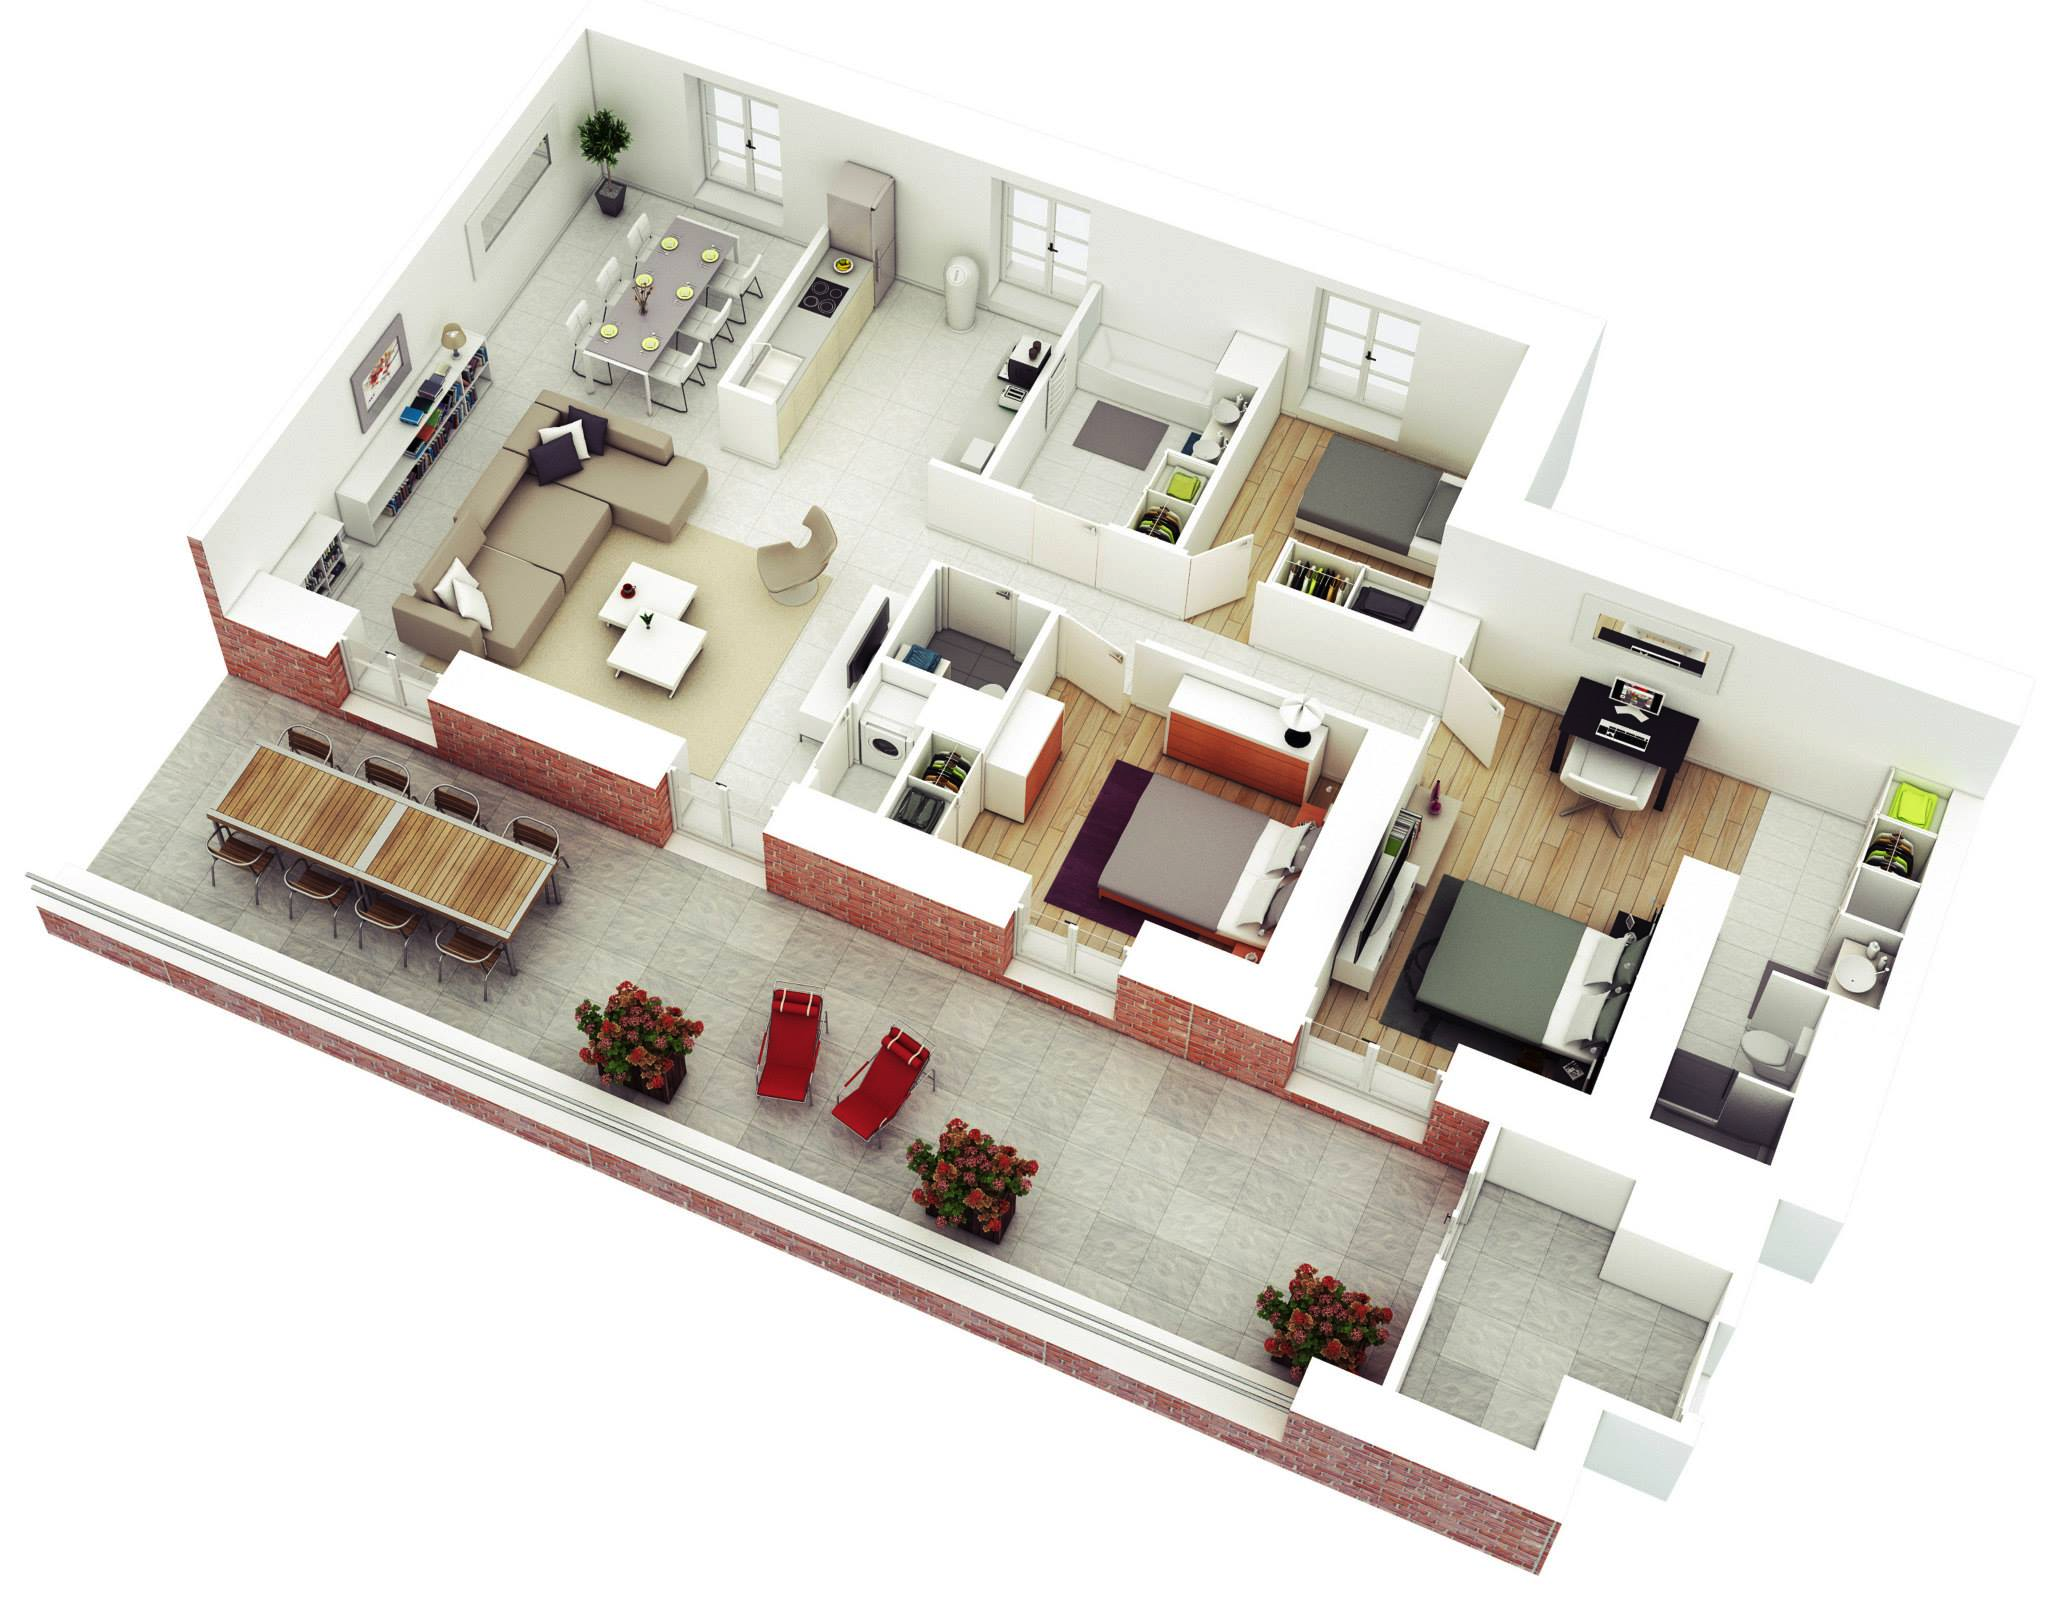 Plans De Maison 3d 25 More 3 Bedroom 3d Floor Plans Architecture Maison 3